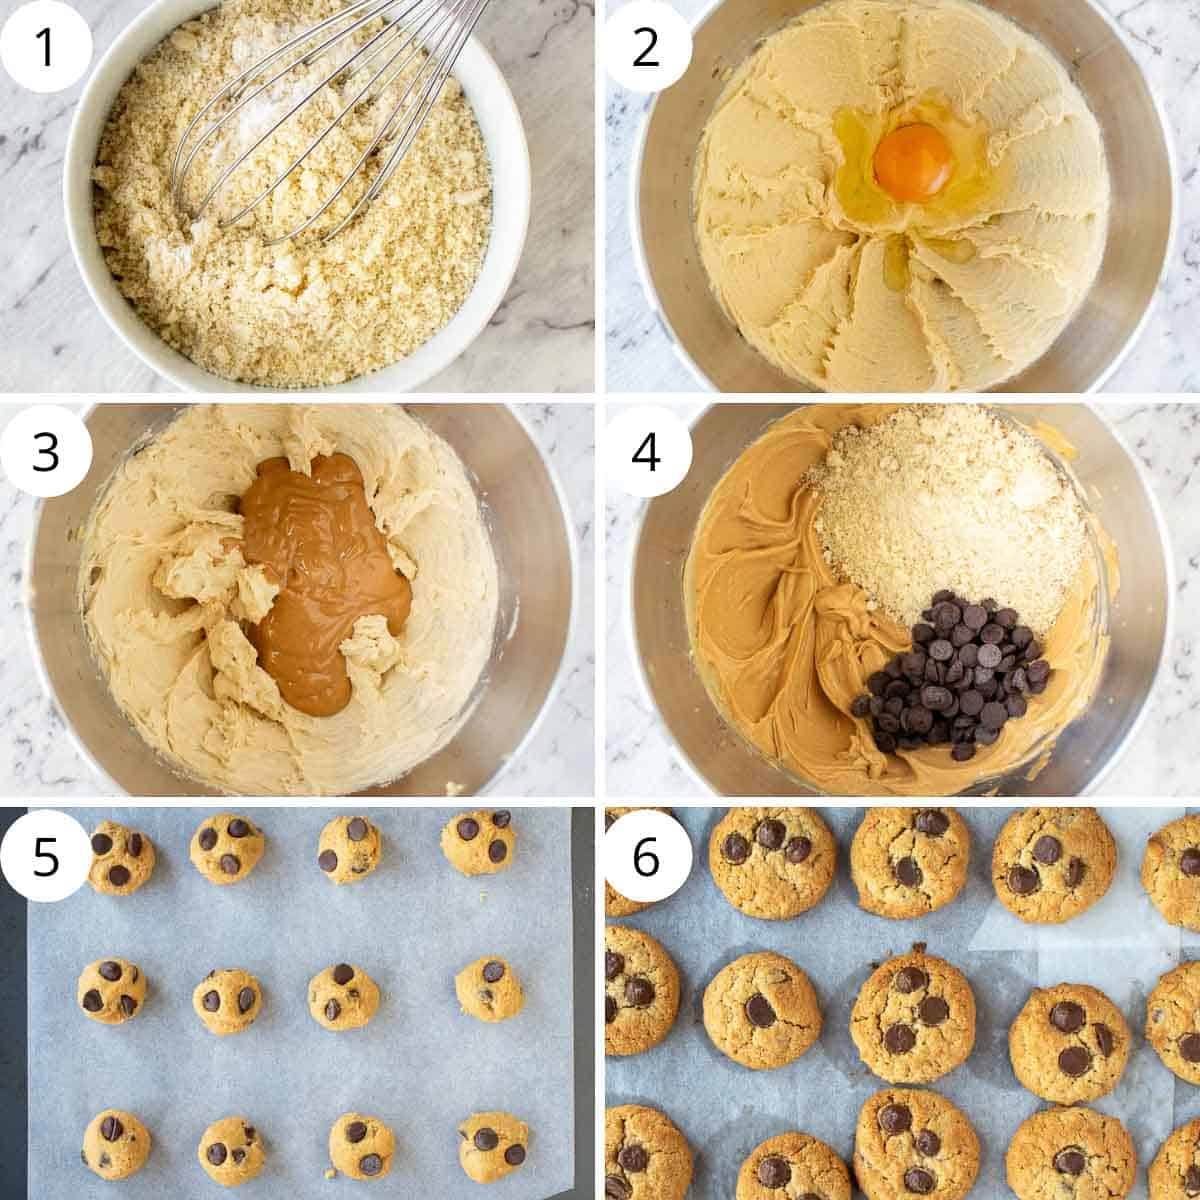 6 step photo collage showing how to make almond flour peanut butter cookies.